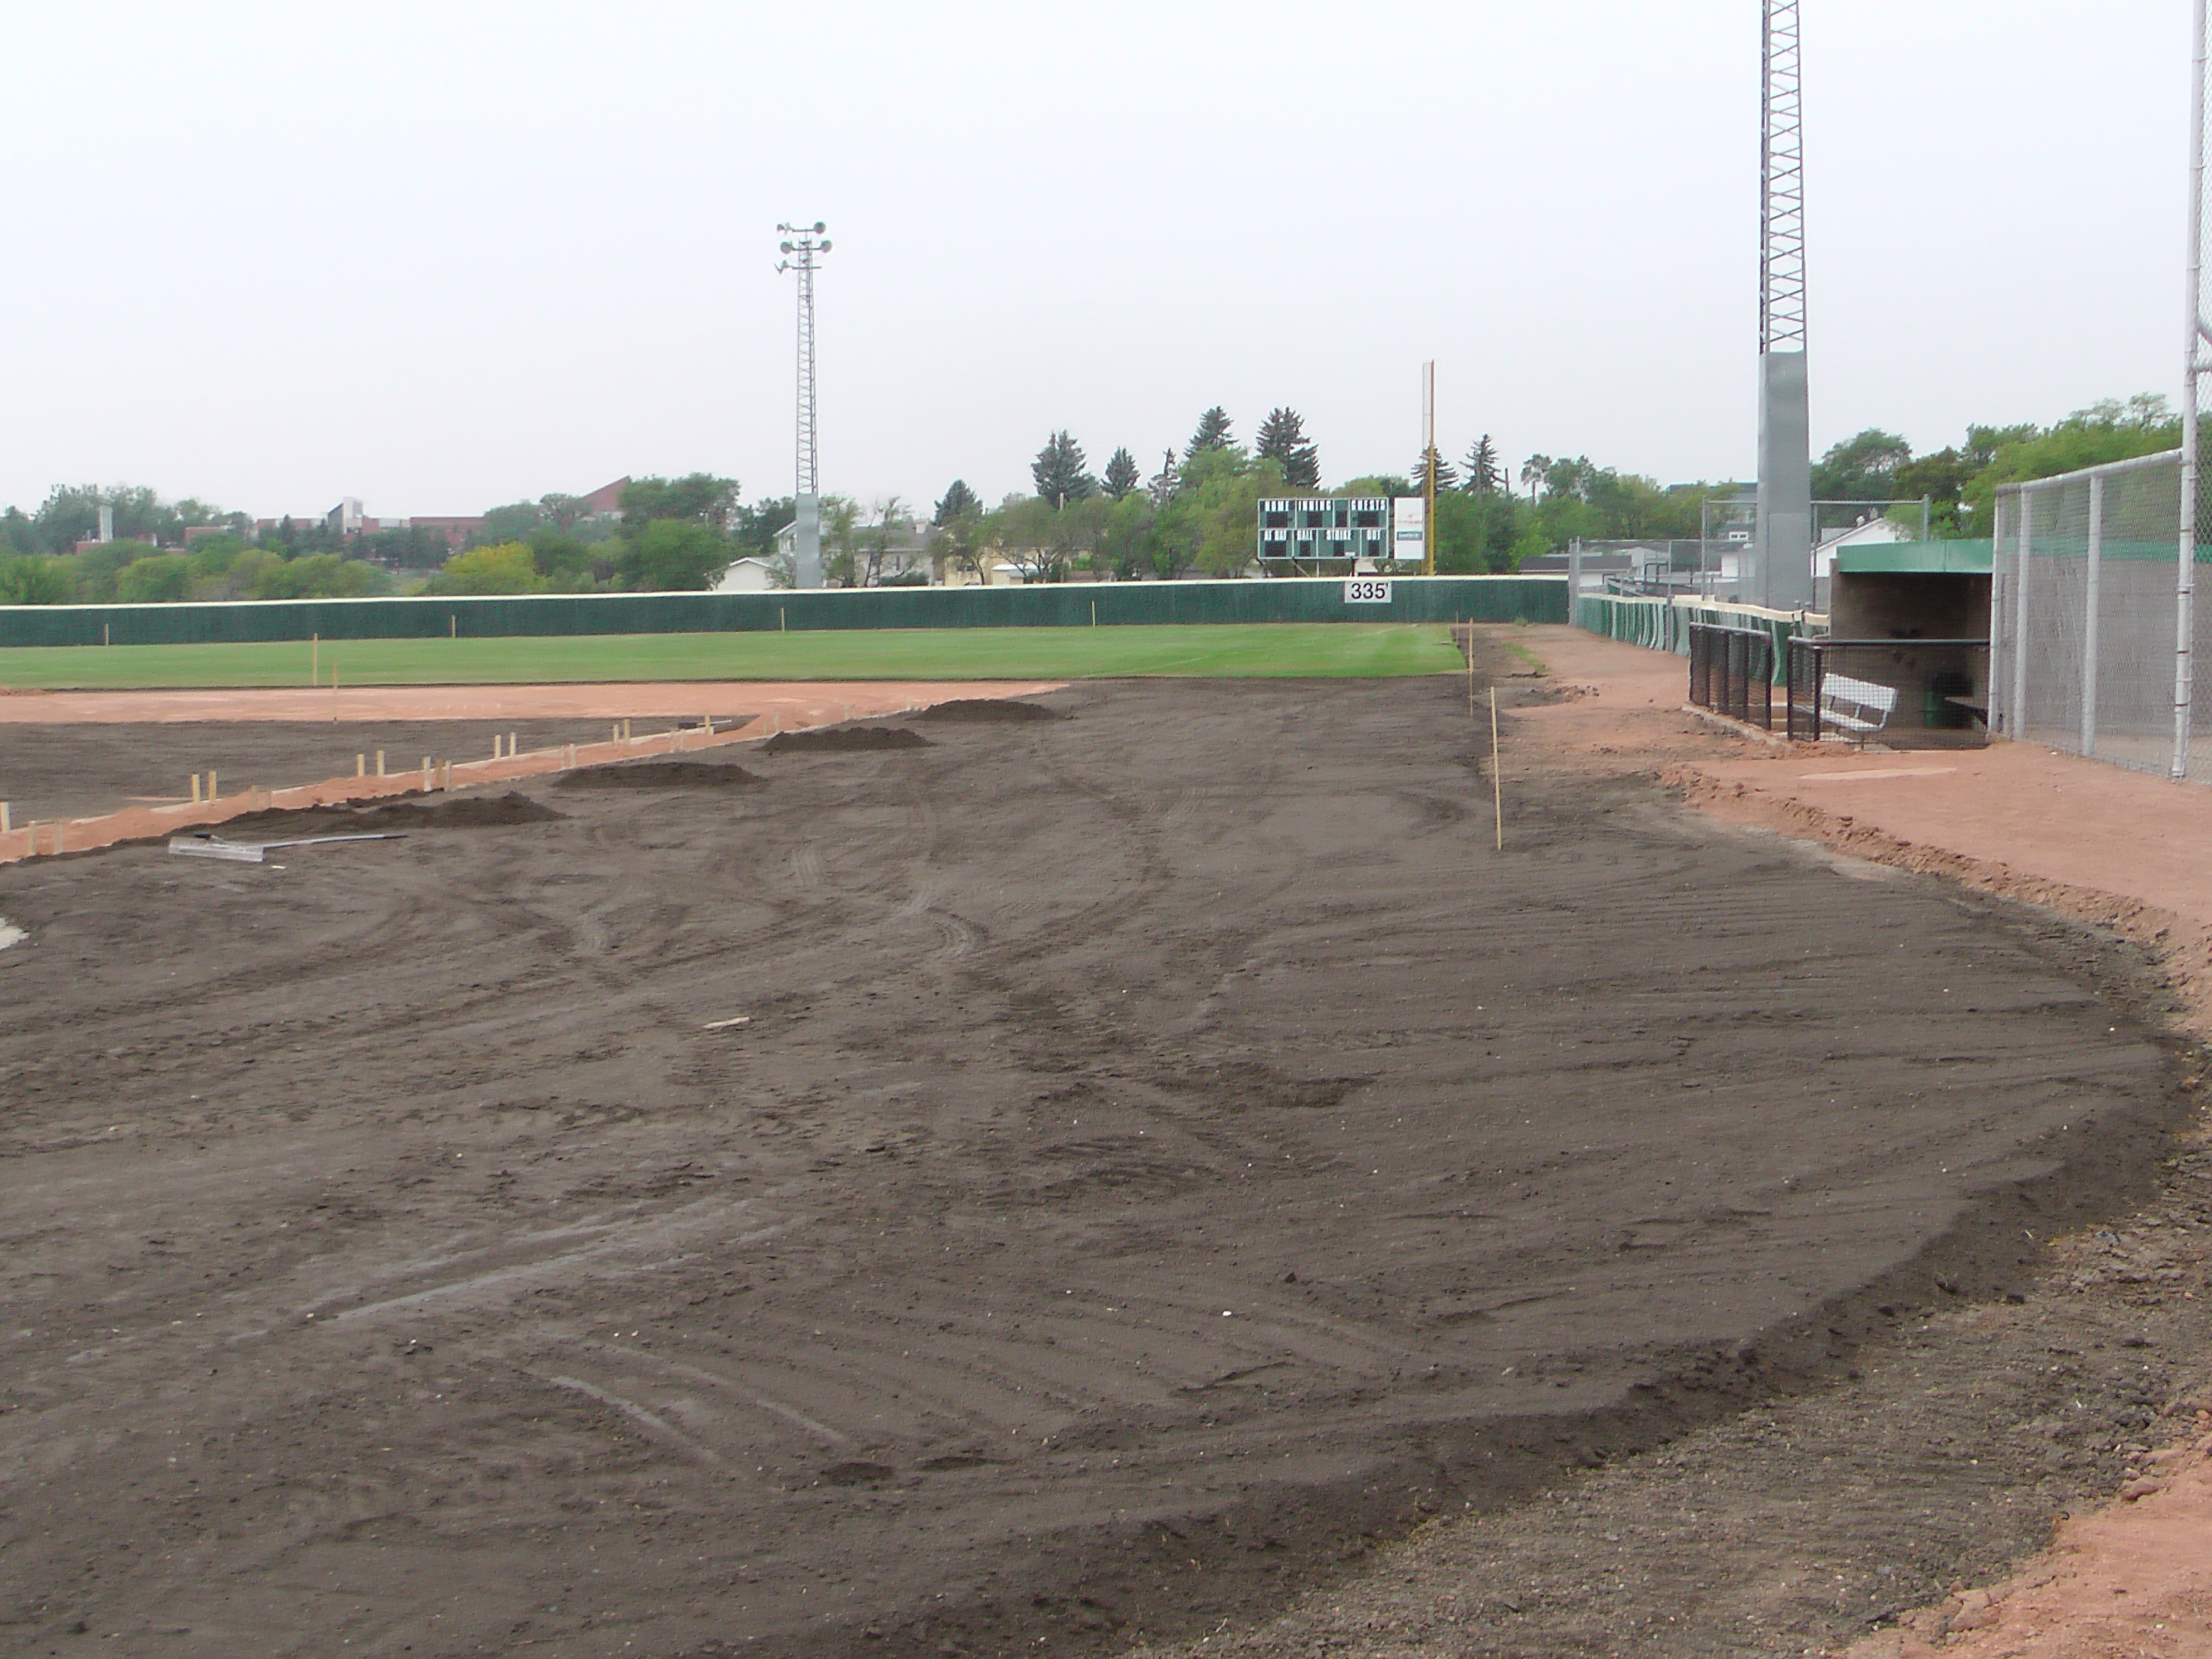 Aug 26/27 2018 Optimist Park Renovations, Continue Leveling Top Soil, More Top Soil added, Digging/Leveling Base Lines/Start Level Shale - Image 15